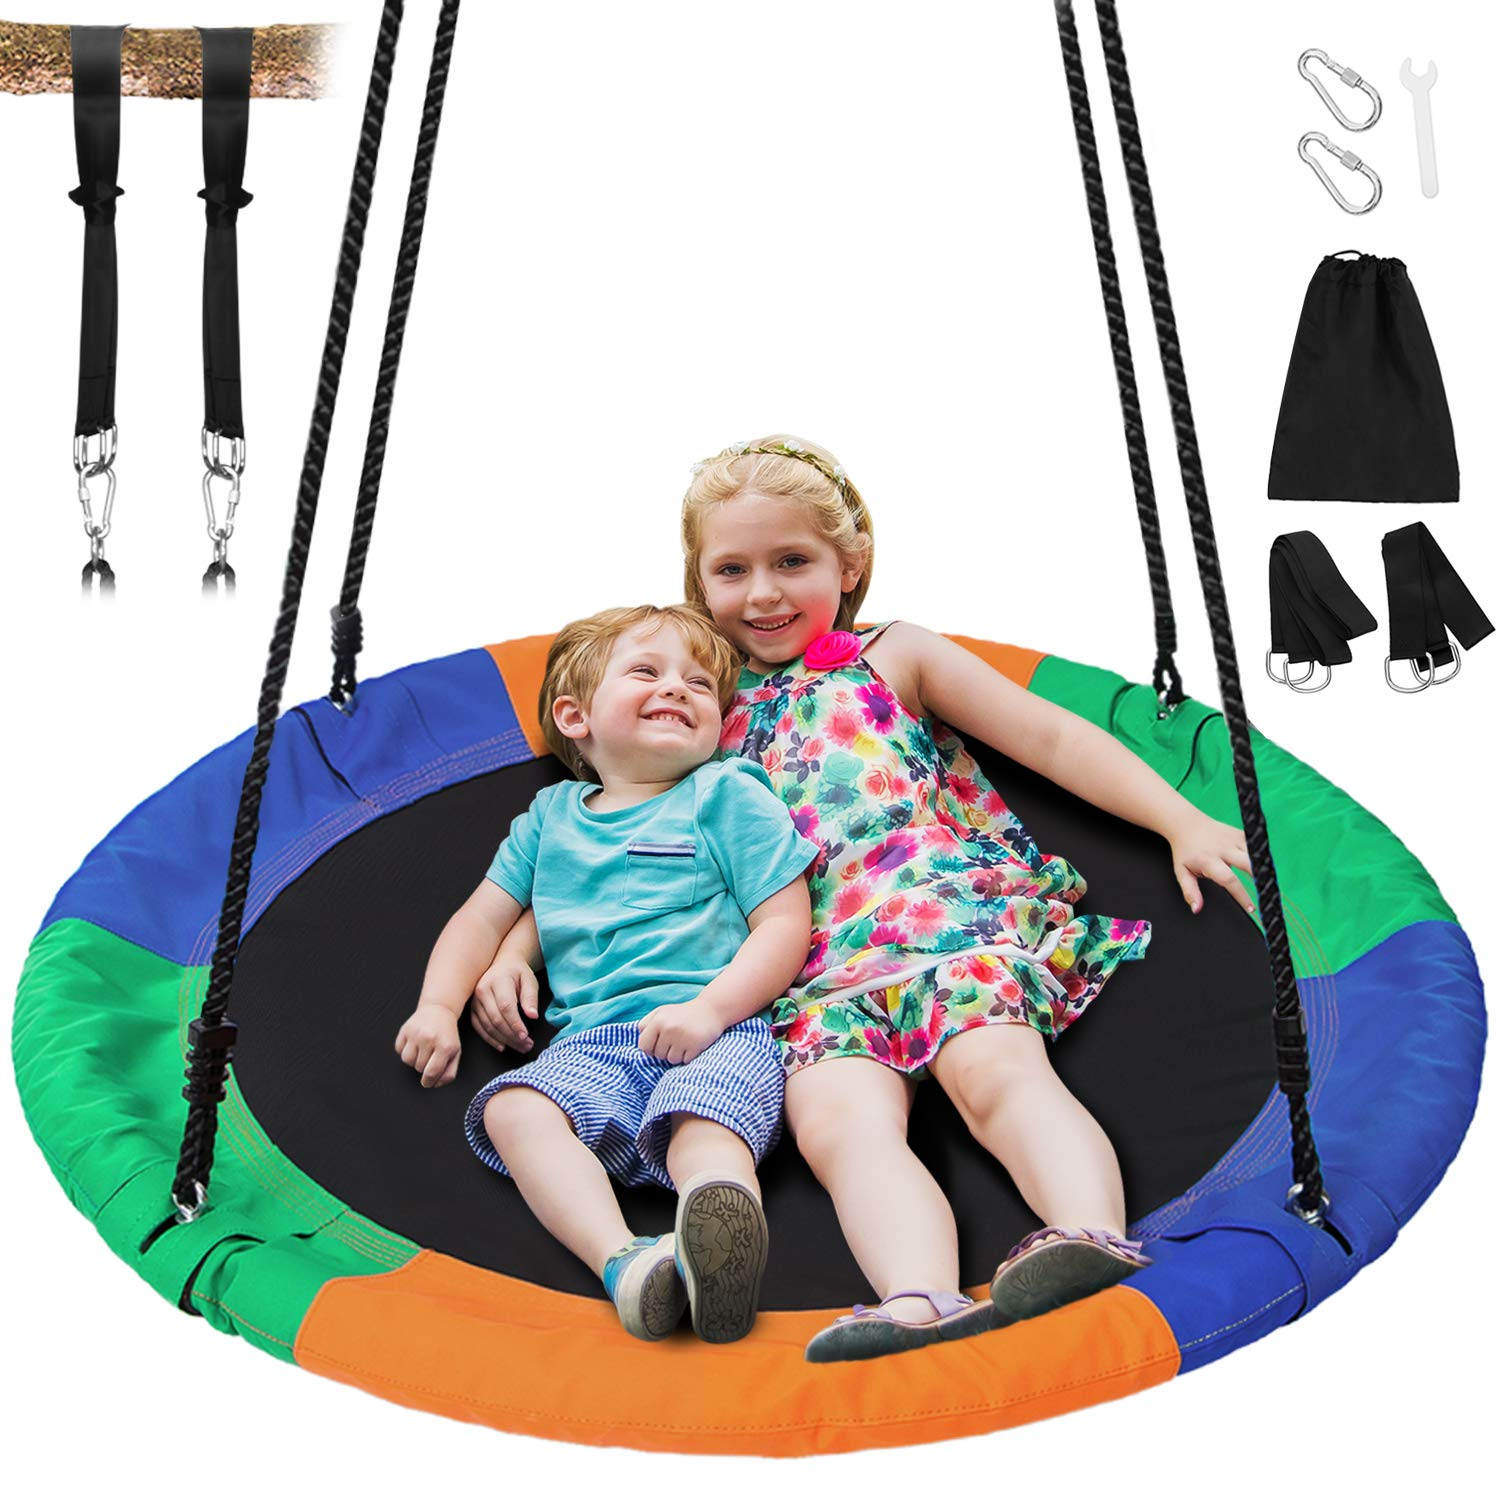 Sunkorto 40 Inch Flying Saucer Tree Swing, Round Indoor Outdoor Swingset with Hanging Strap Kit, 600lb Weight Capacity, Steel Frame & Adjustable Rope, Easy Install Swing Set for Kids Adults, Colorful by Sunkorto